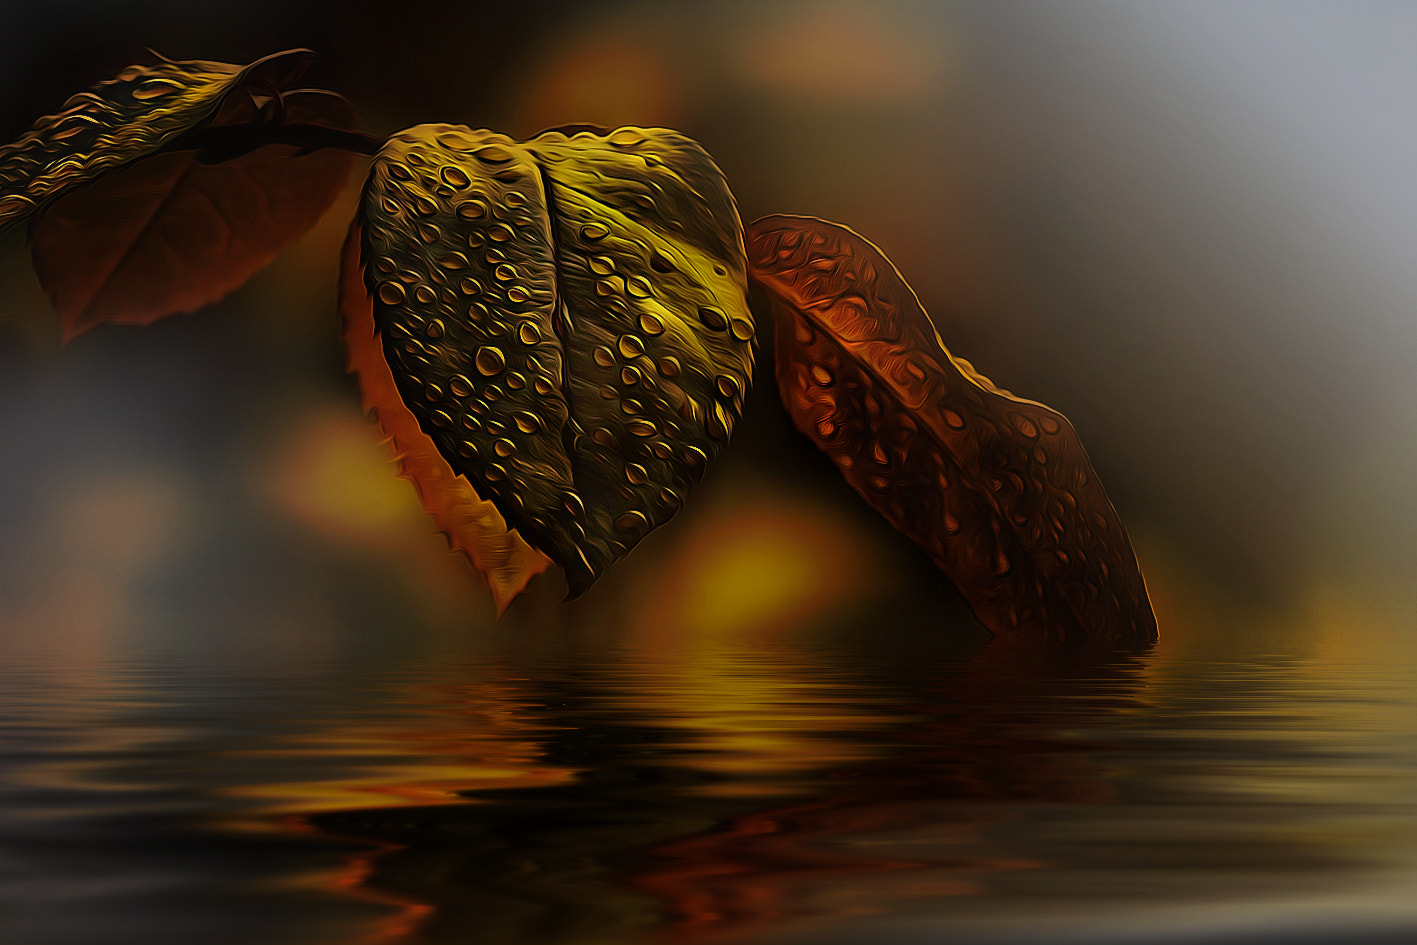 Photograph leaves_art by Detlef Knapp on 500px